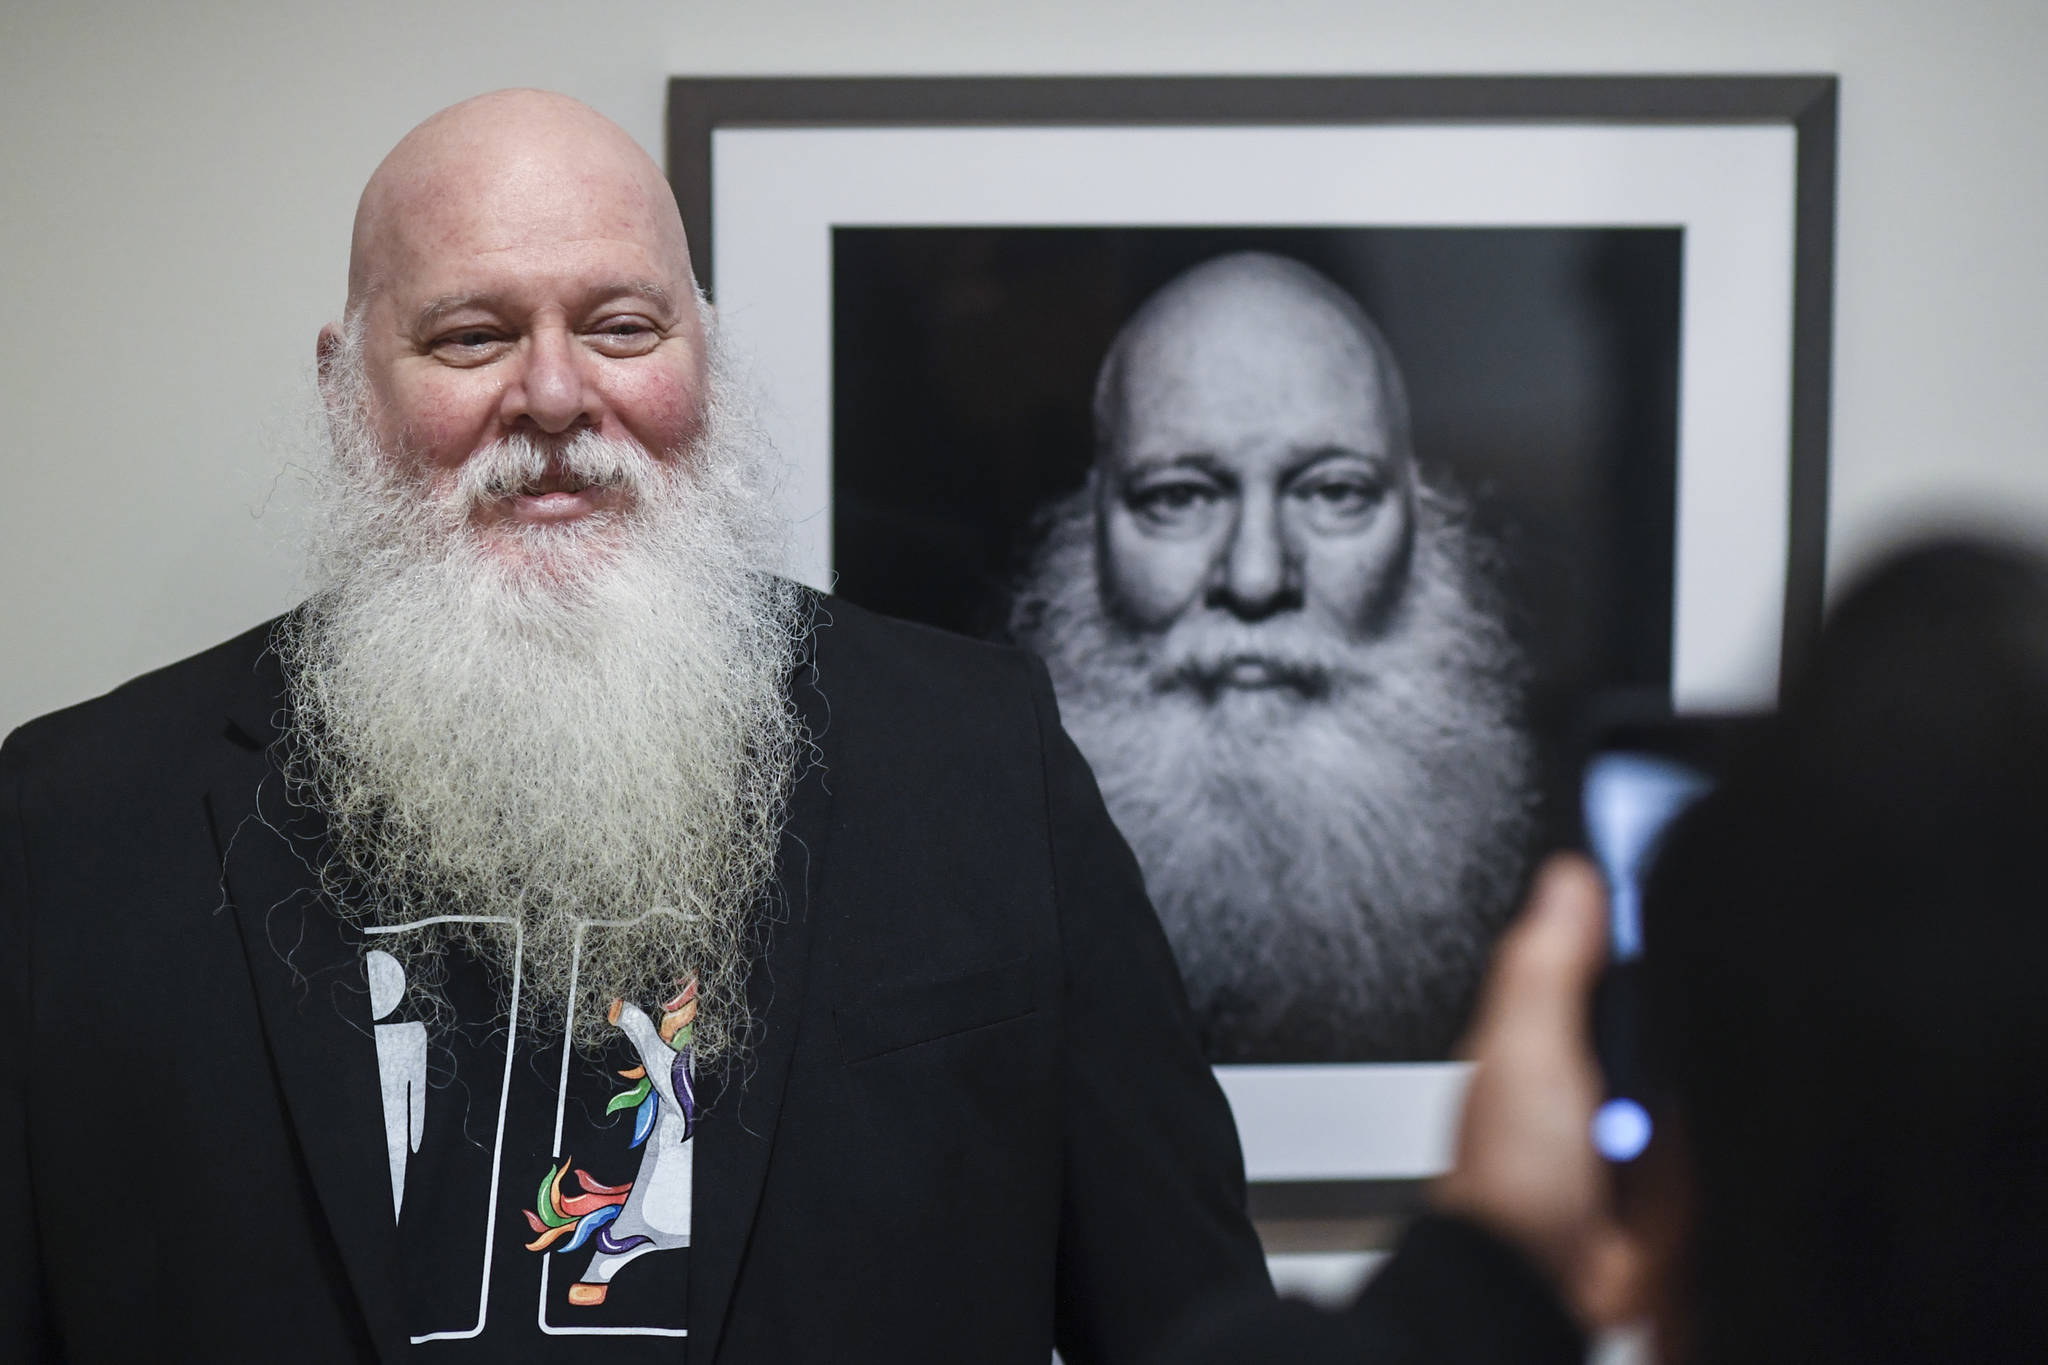 Mike Gates of Ketchikan has his picture taken by friend Dan Dawson in front of his self portrait at the Alaska Positive juried photography exhibit at the Alaska State Museum during Gallery Walk on Friday, Dec. 6, 2019. Gates received an Award of Recognition for his self portrait. (Michael Penn | Juneau Empire)